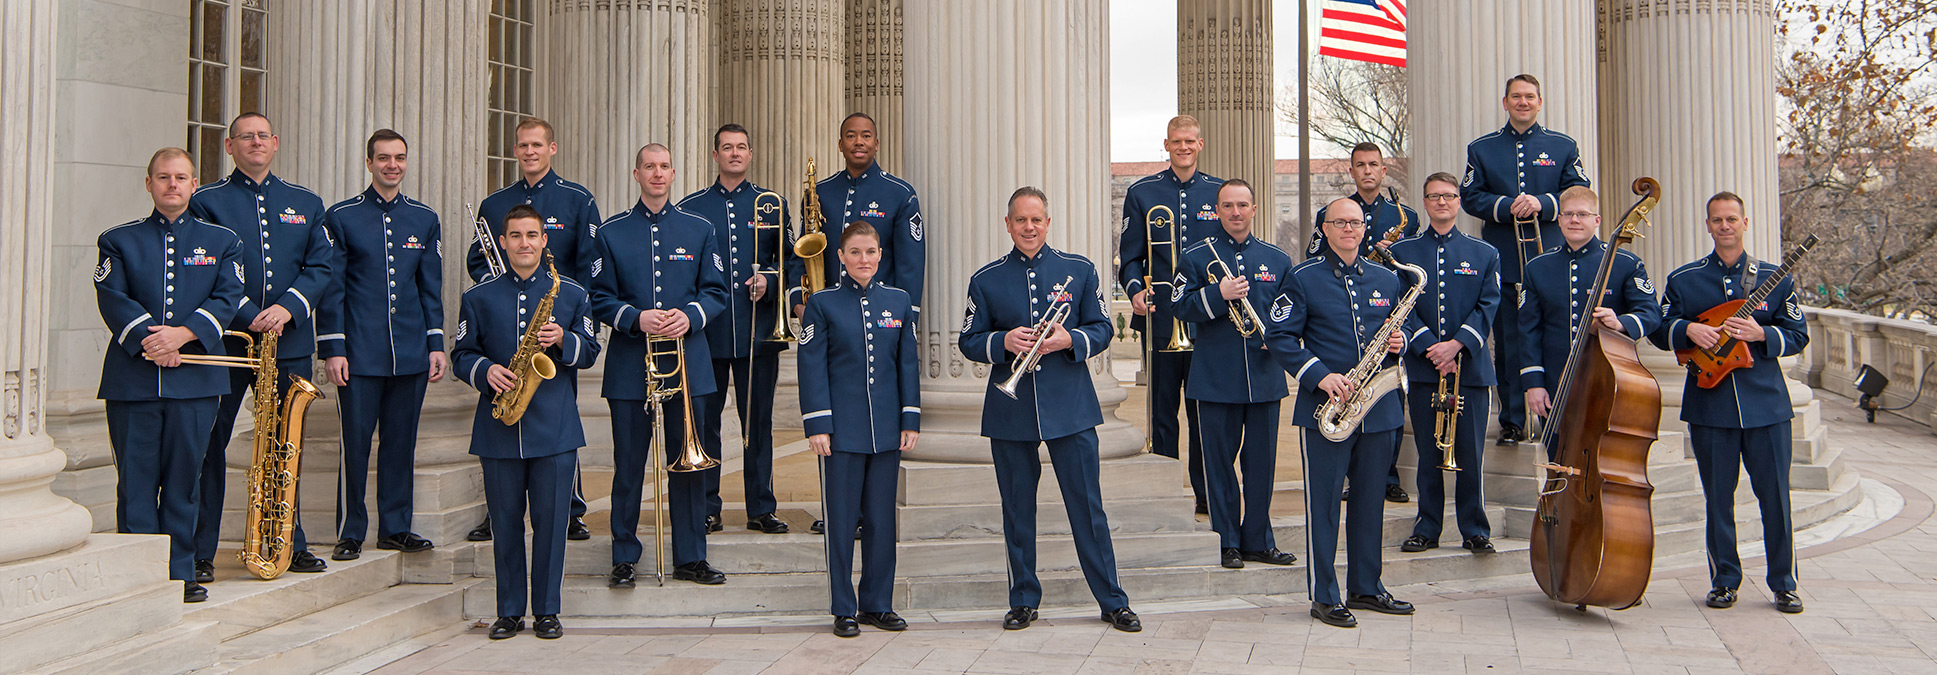 The United States Air Force Band: Airmen of Note